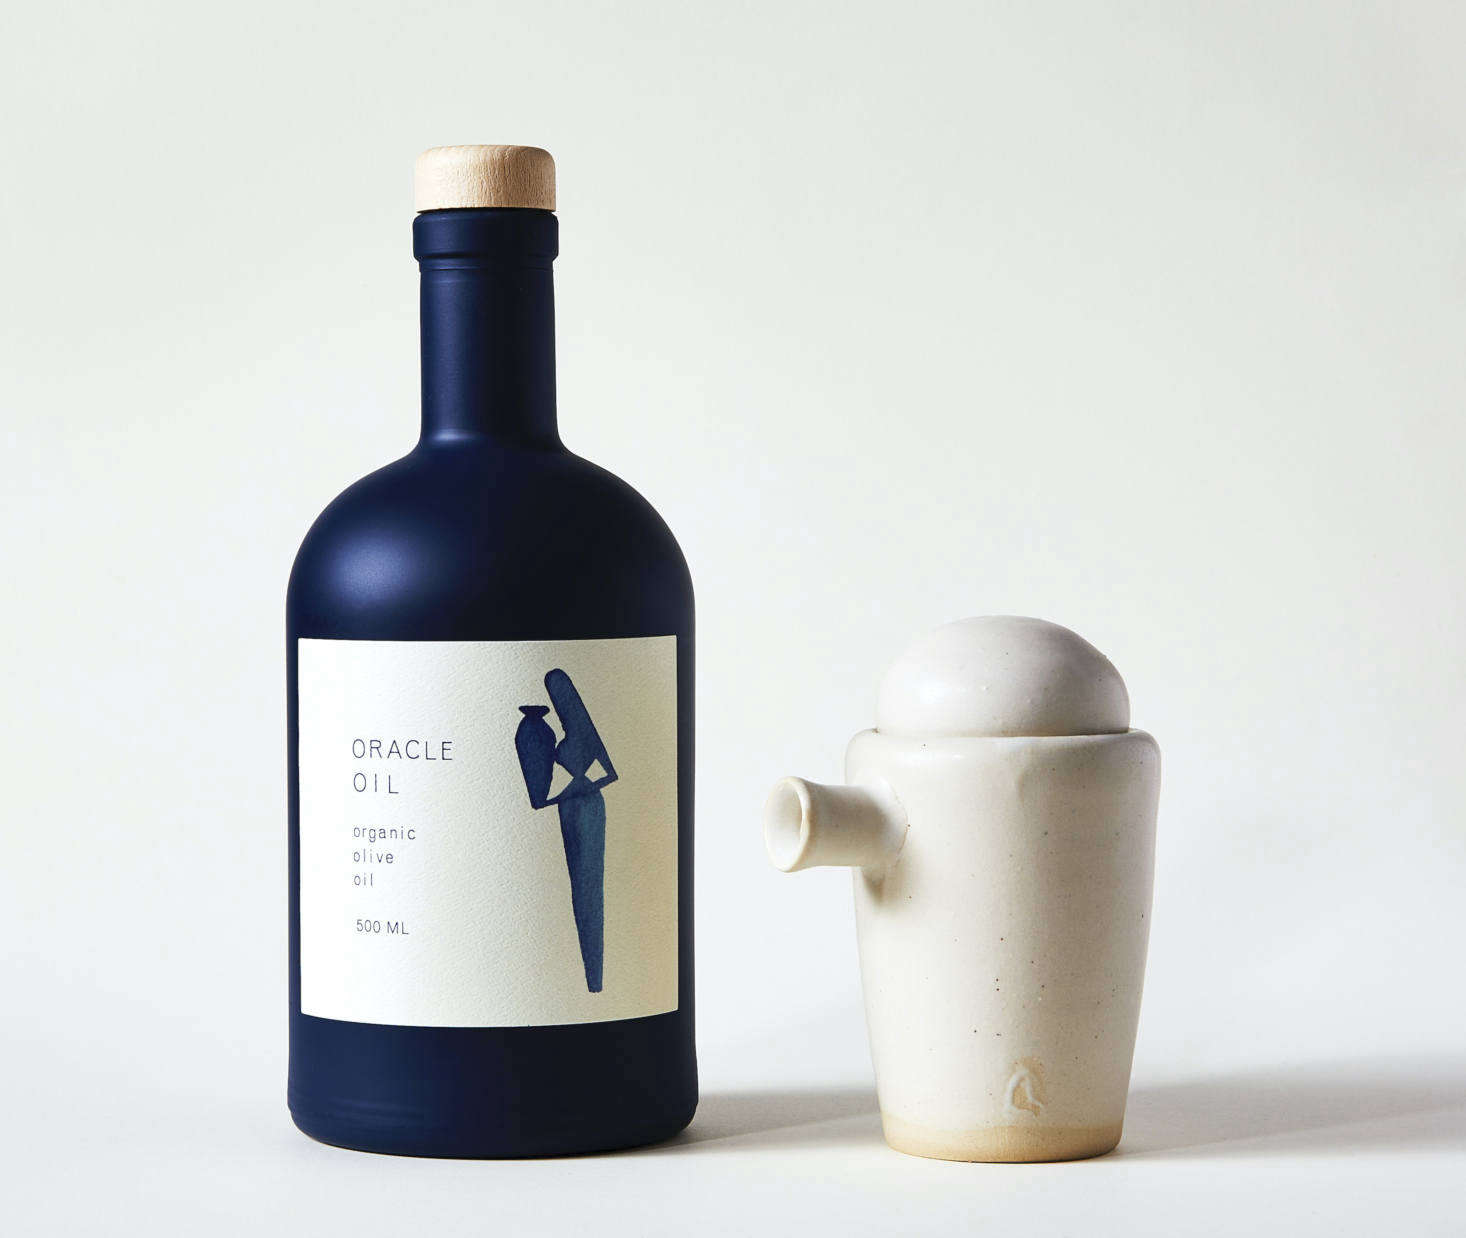 From Remodelista Gift Guide :  Surprises for the Eco-Minded Aesthete: The koroneiki olives used to make Oracle Oil's extra-virgin olive oil come from a collective of farms in Laconia, Greece, including one belonging to the family of Oracle's founder, Cristiana Sadigianis. A .9-ounce bottle is $40 and comes with illustrated Greek recipe cards.